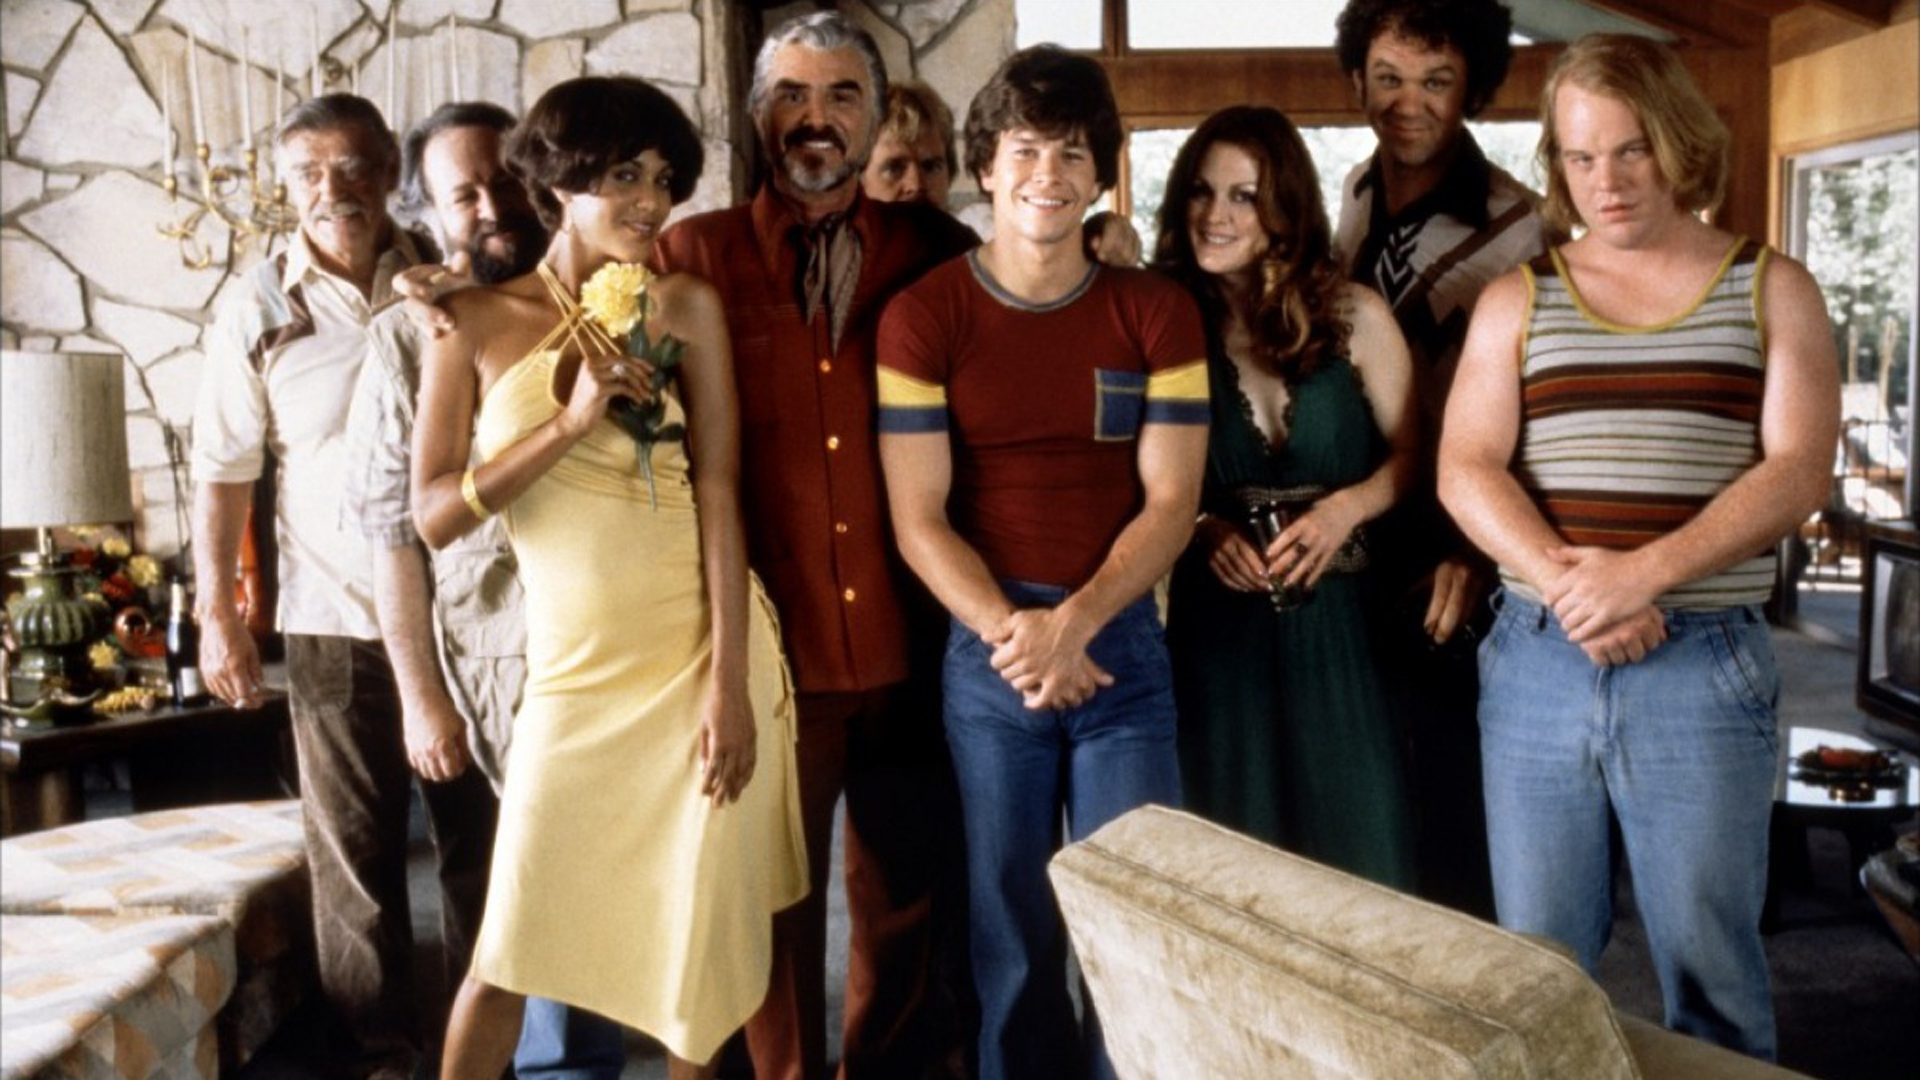 boogie nights depiction endorsement and the wounded humanity of the